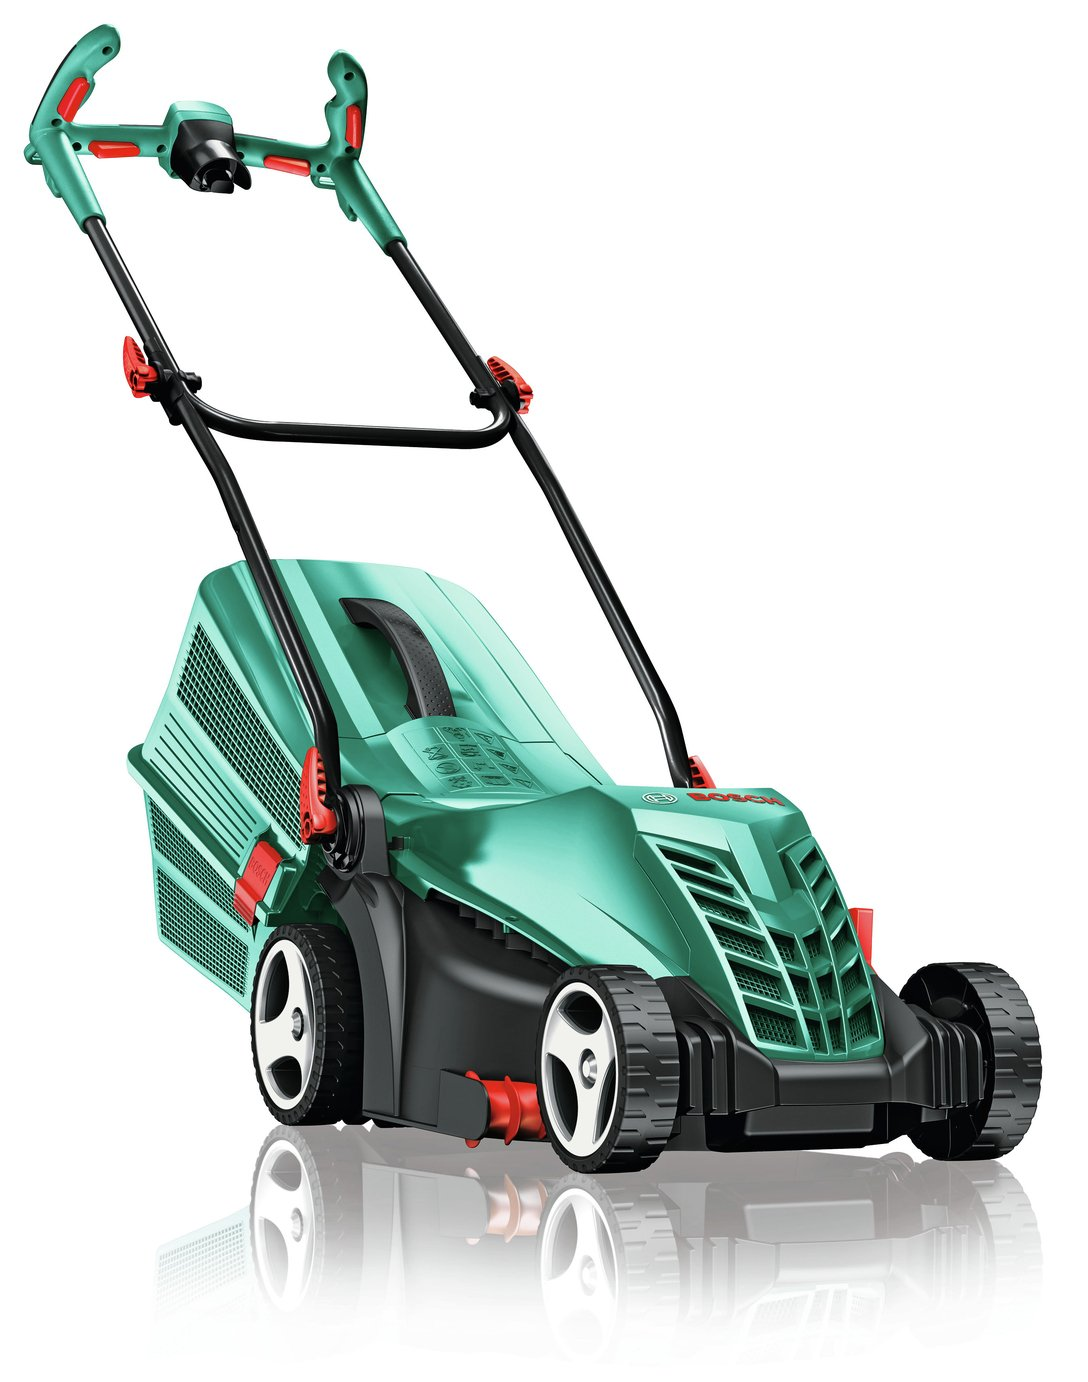 bosch rotak 37 14 corded rotary lawnmower 1400w review. Black Bedroom Furniture Sets. Home Design Ideas